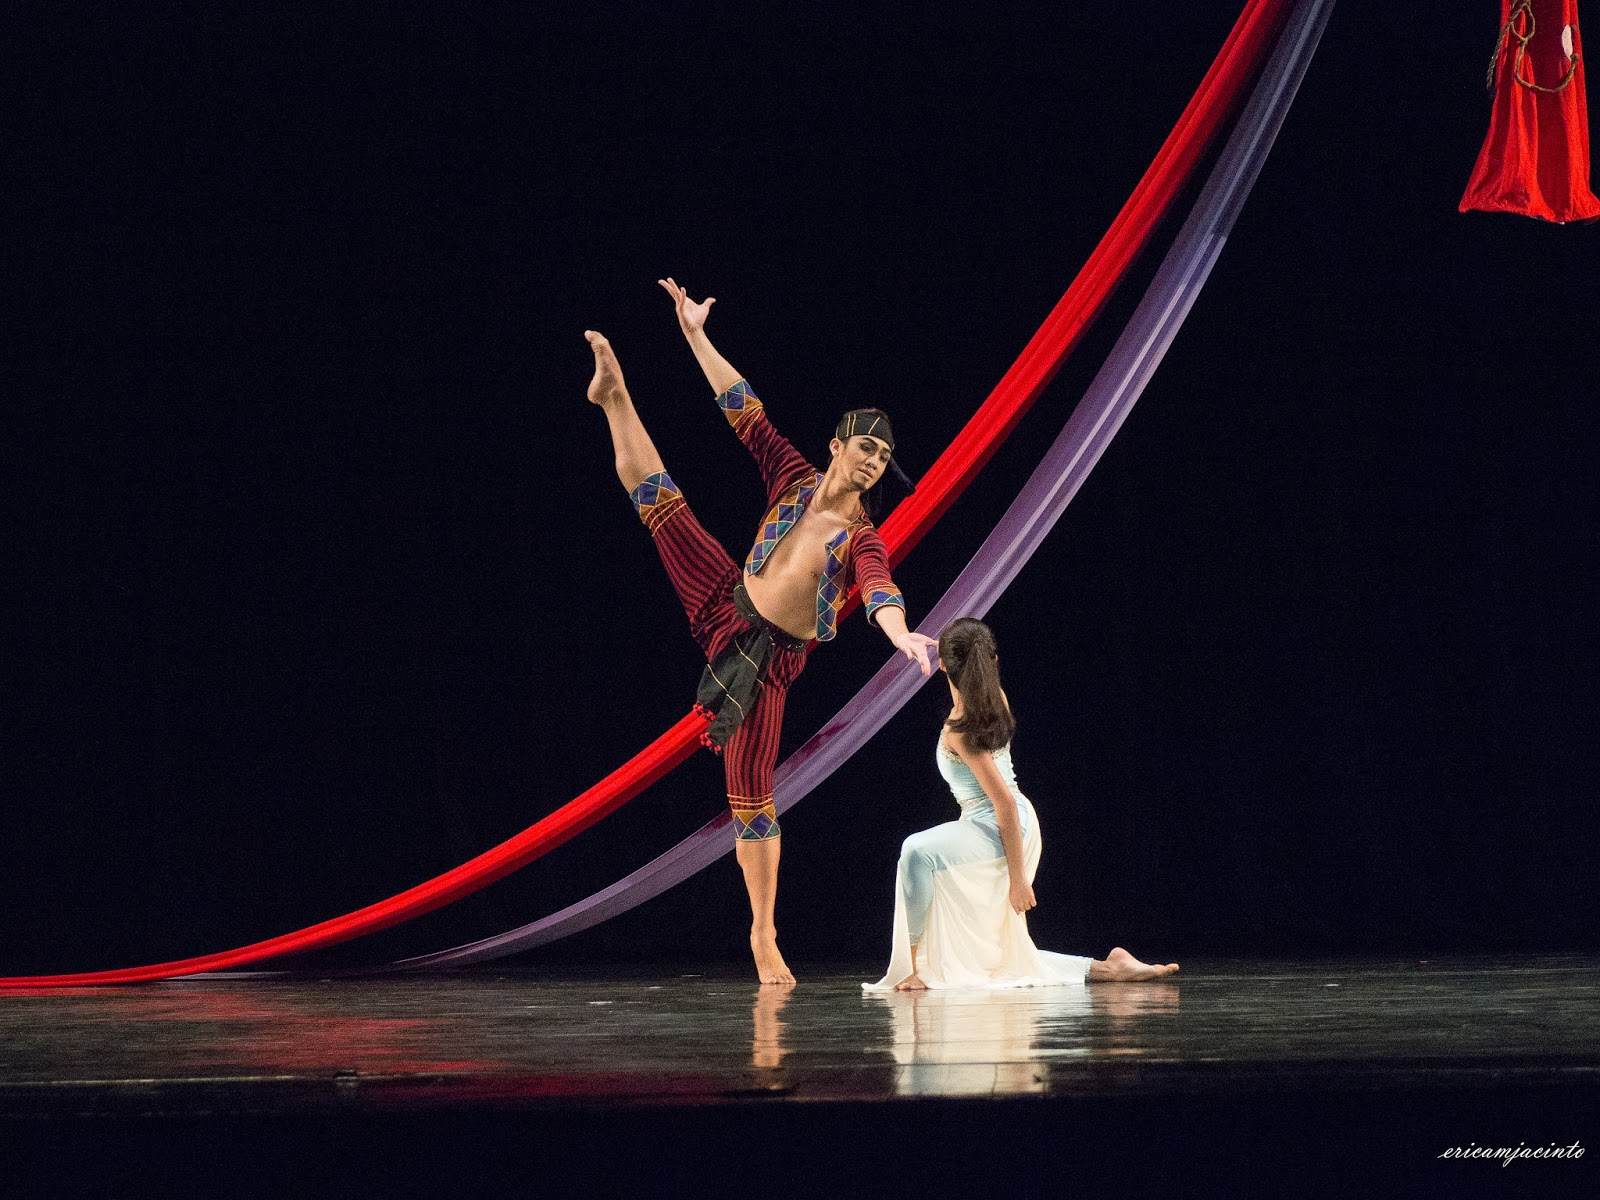 ballet philippines Learn about working at ballet philippines join linkedin today for free see who you know at ballet philippines, leverage your professional network, and get hired.